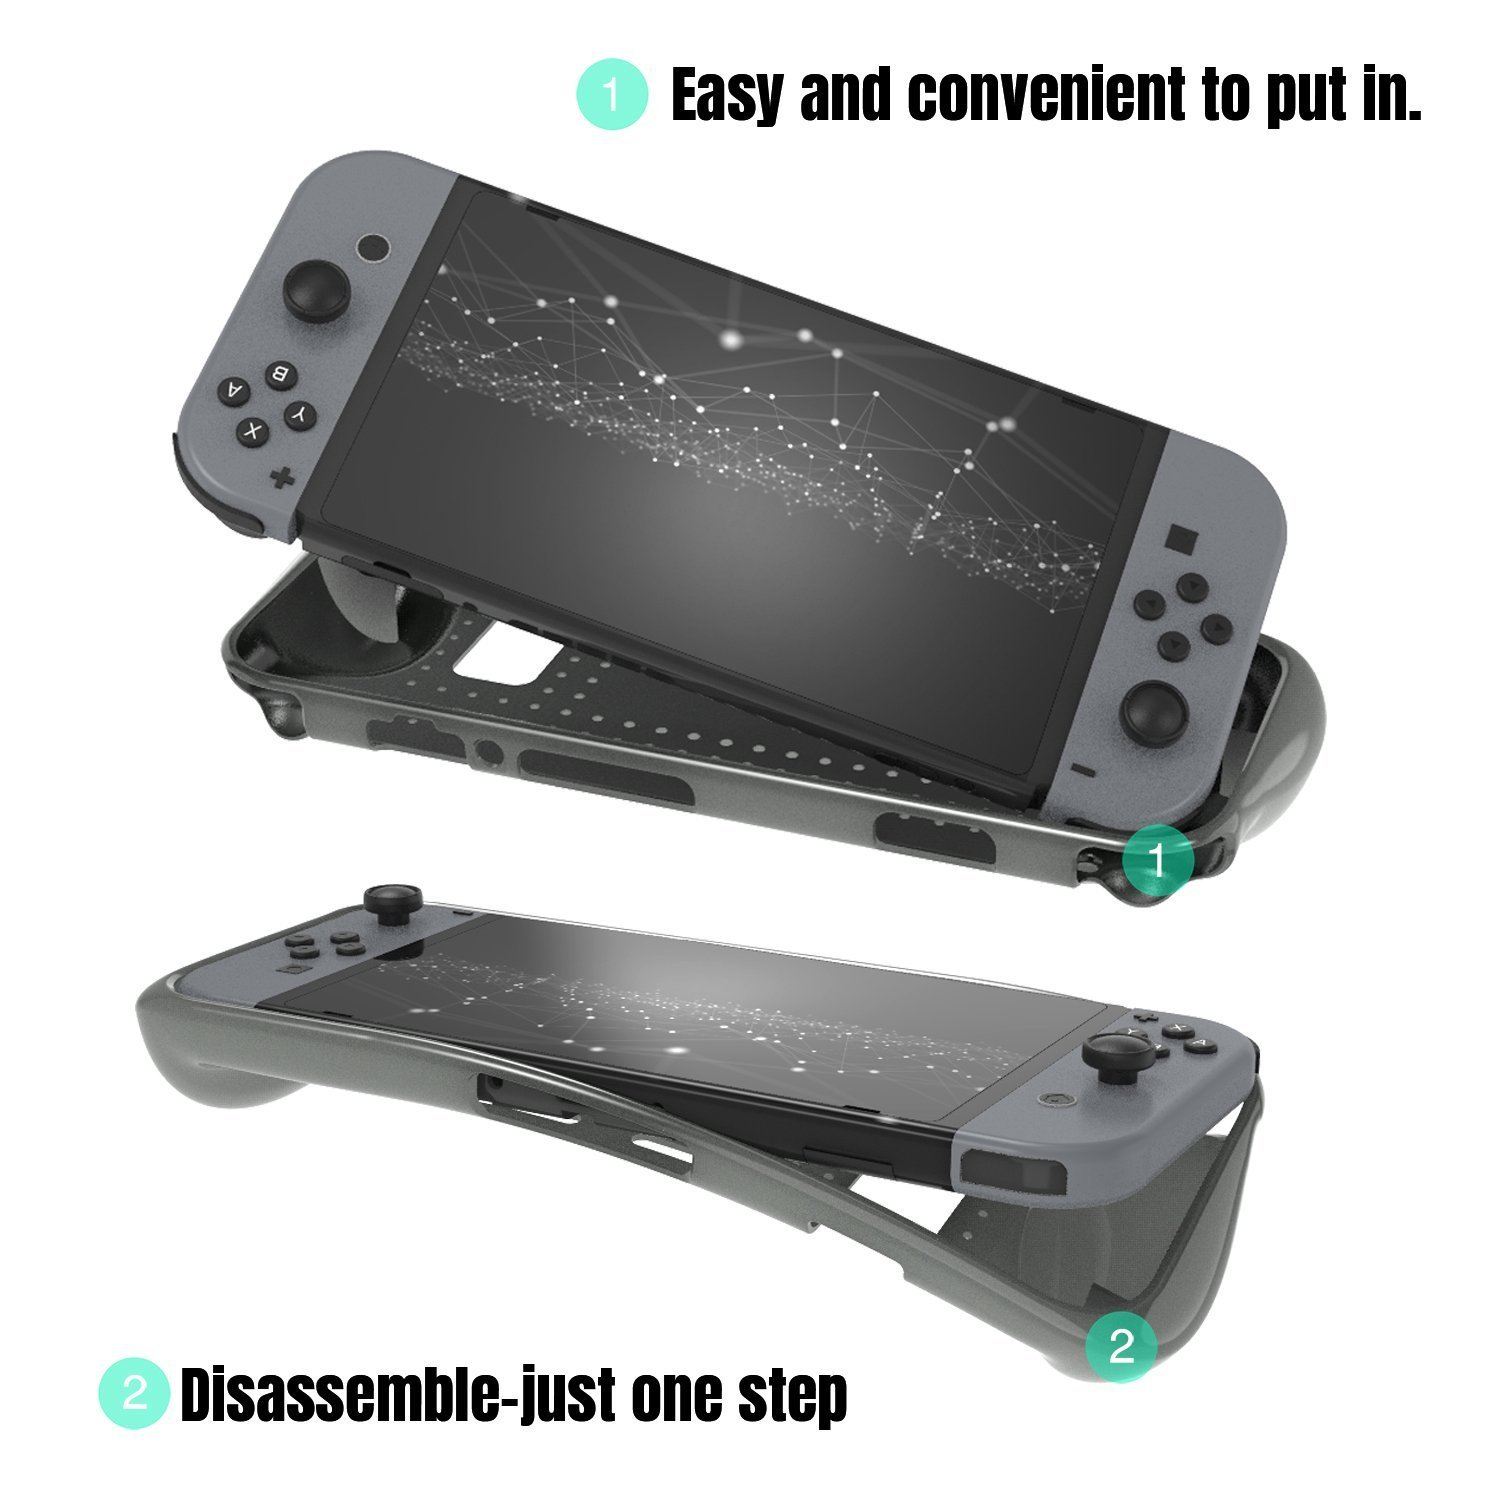 Protective Case for Nintendo Switch, Comfortable Soft TPU Full Body Protection Shock Absorption Heat Dissipation Design Cover Case for Nintendo Switch (Grey)